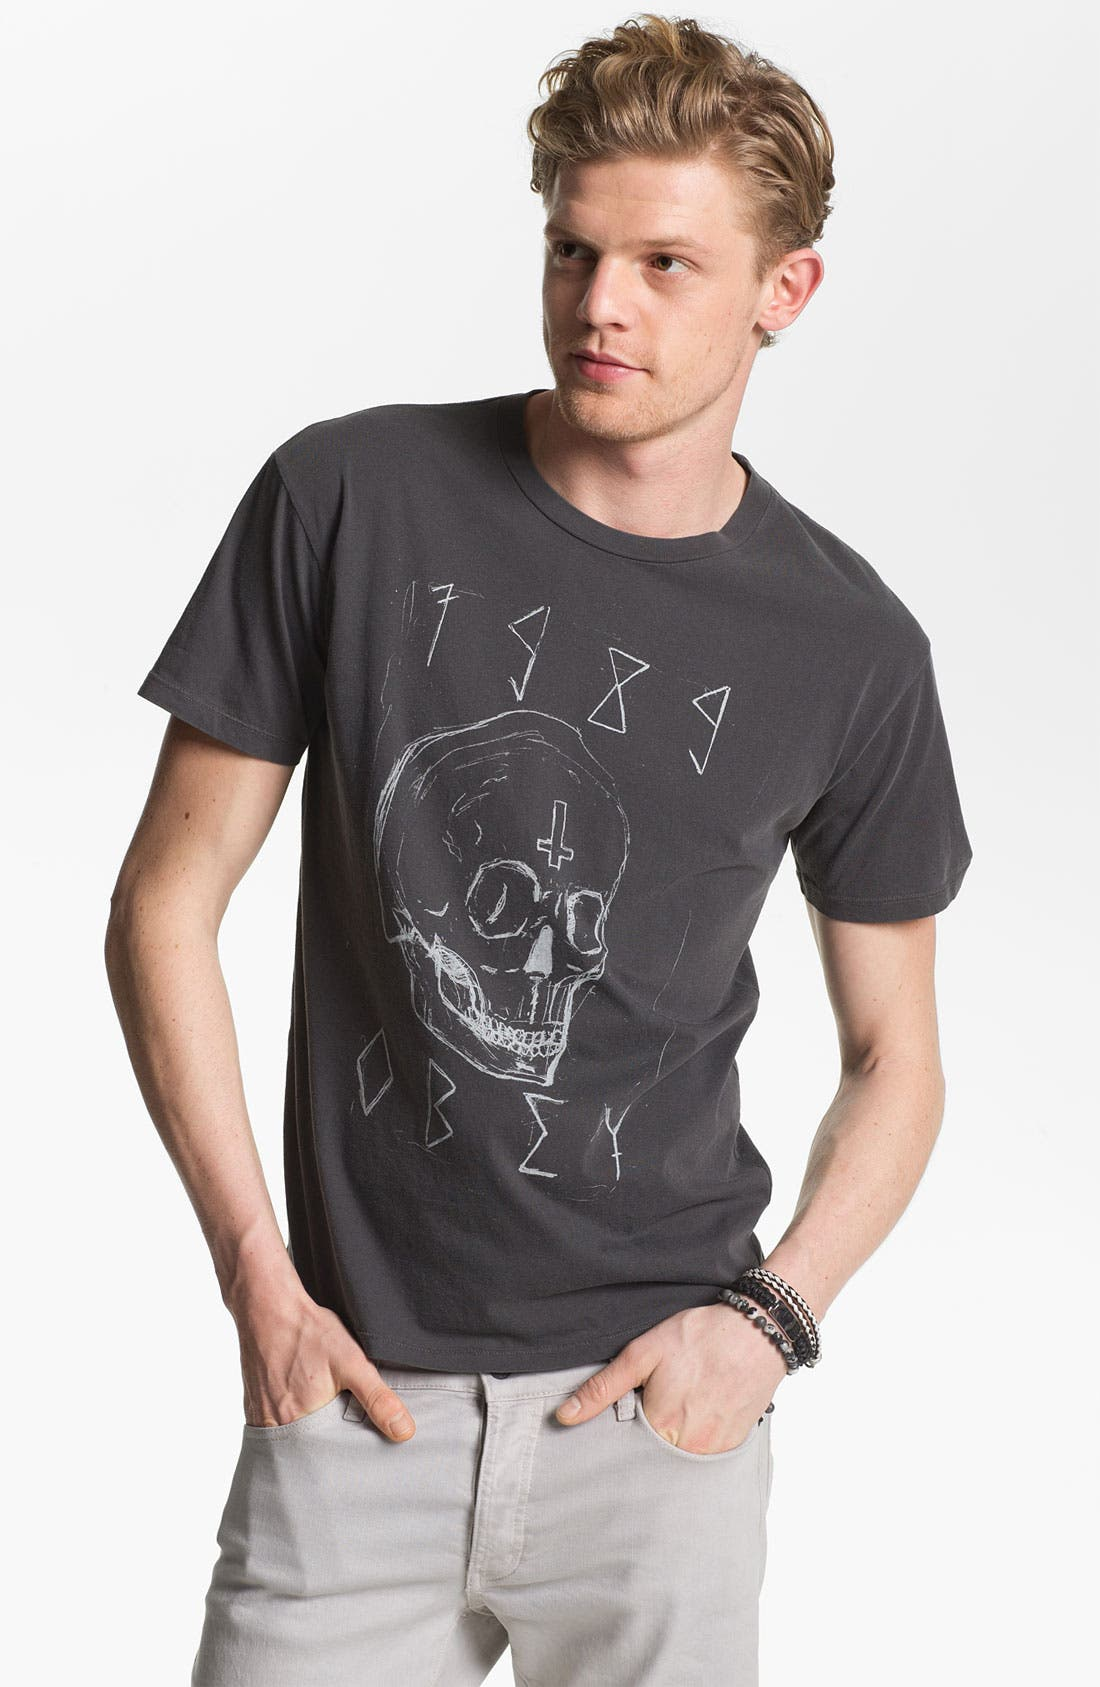 Alternate Image 1 Selected - Obey 'Deadly Skull' Graphic T-Shirt